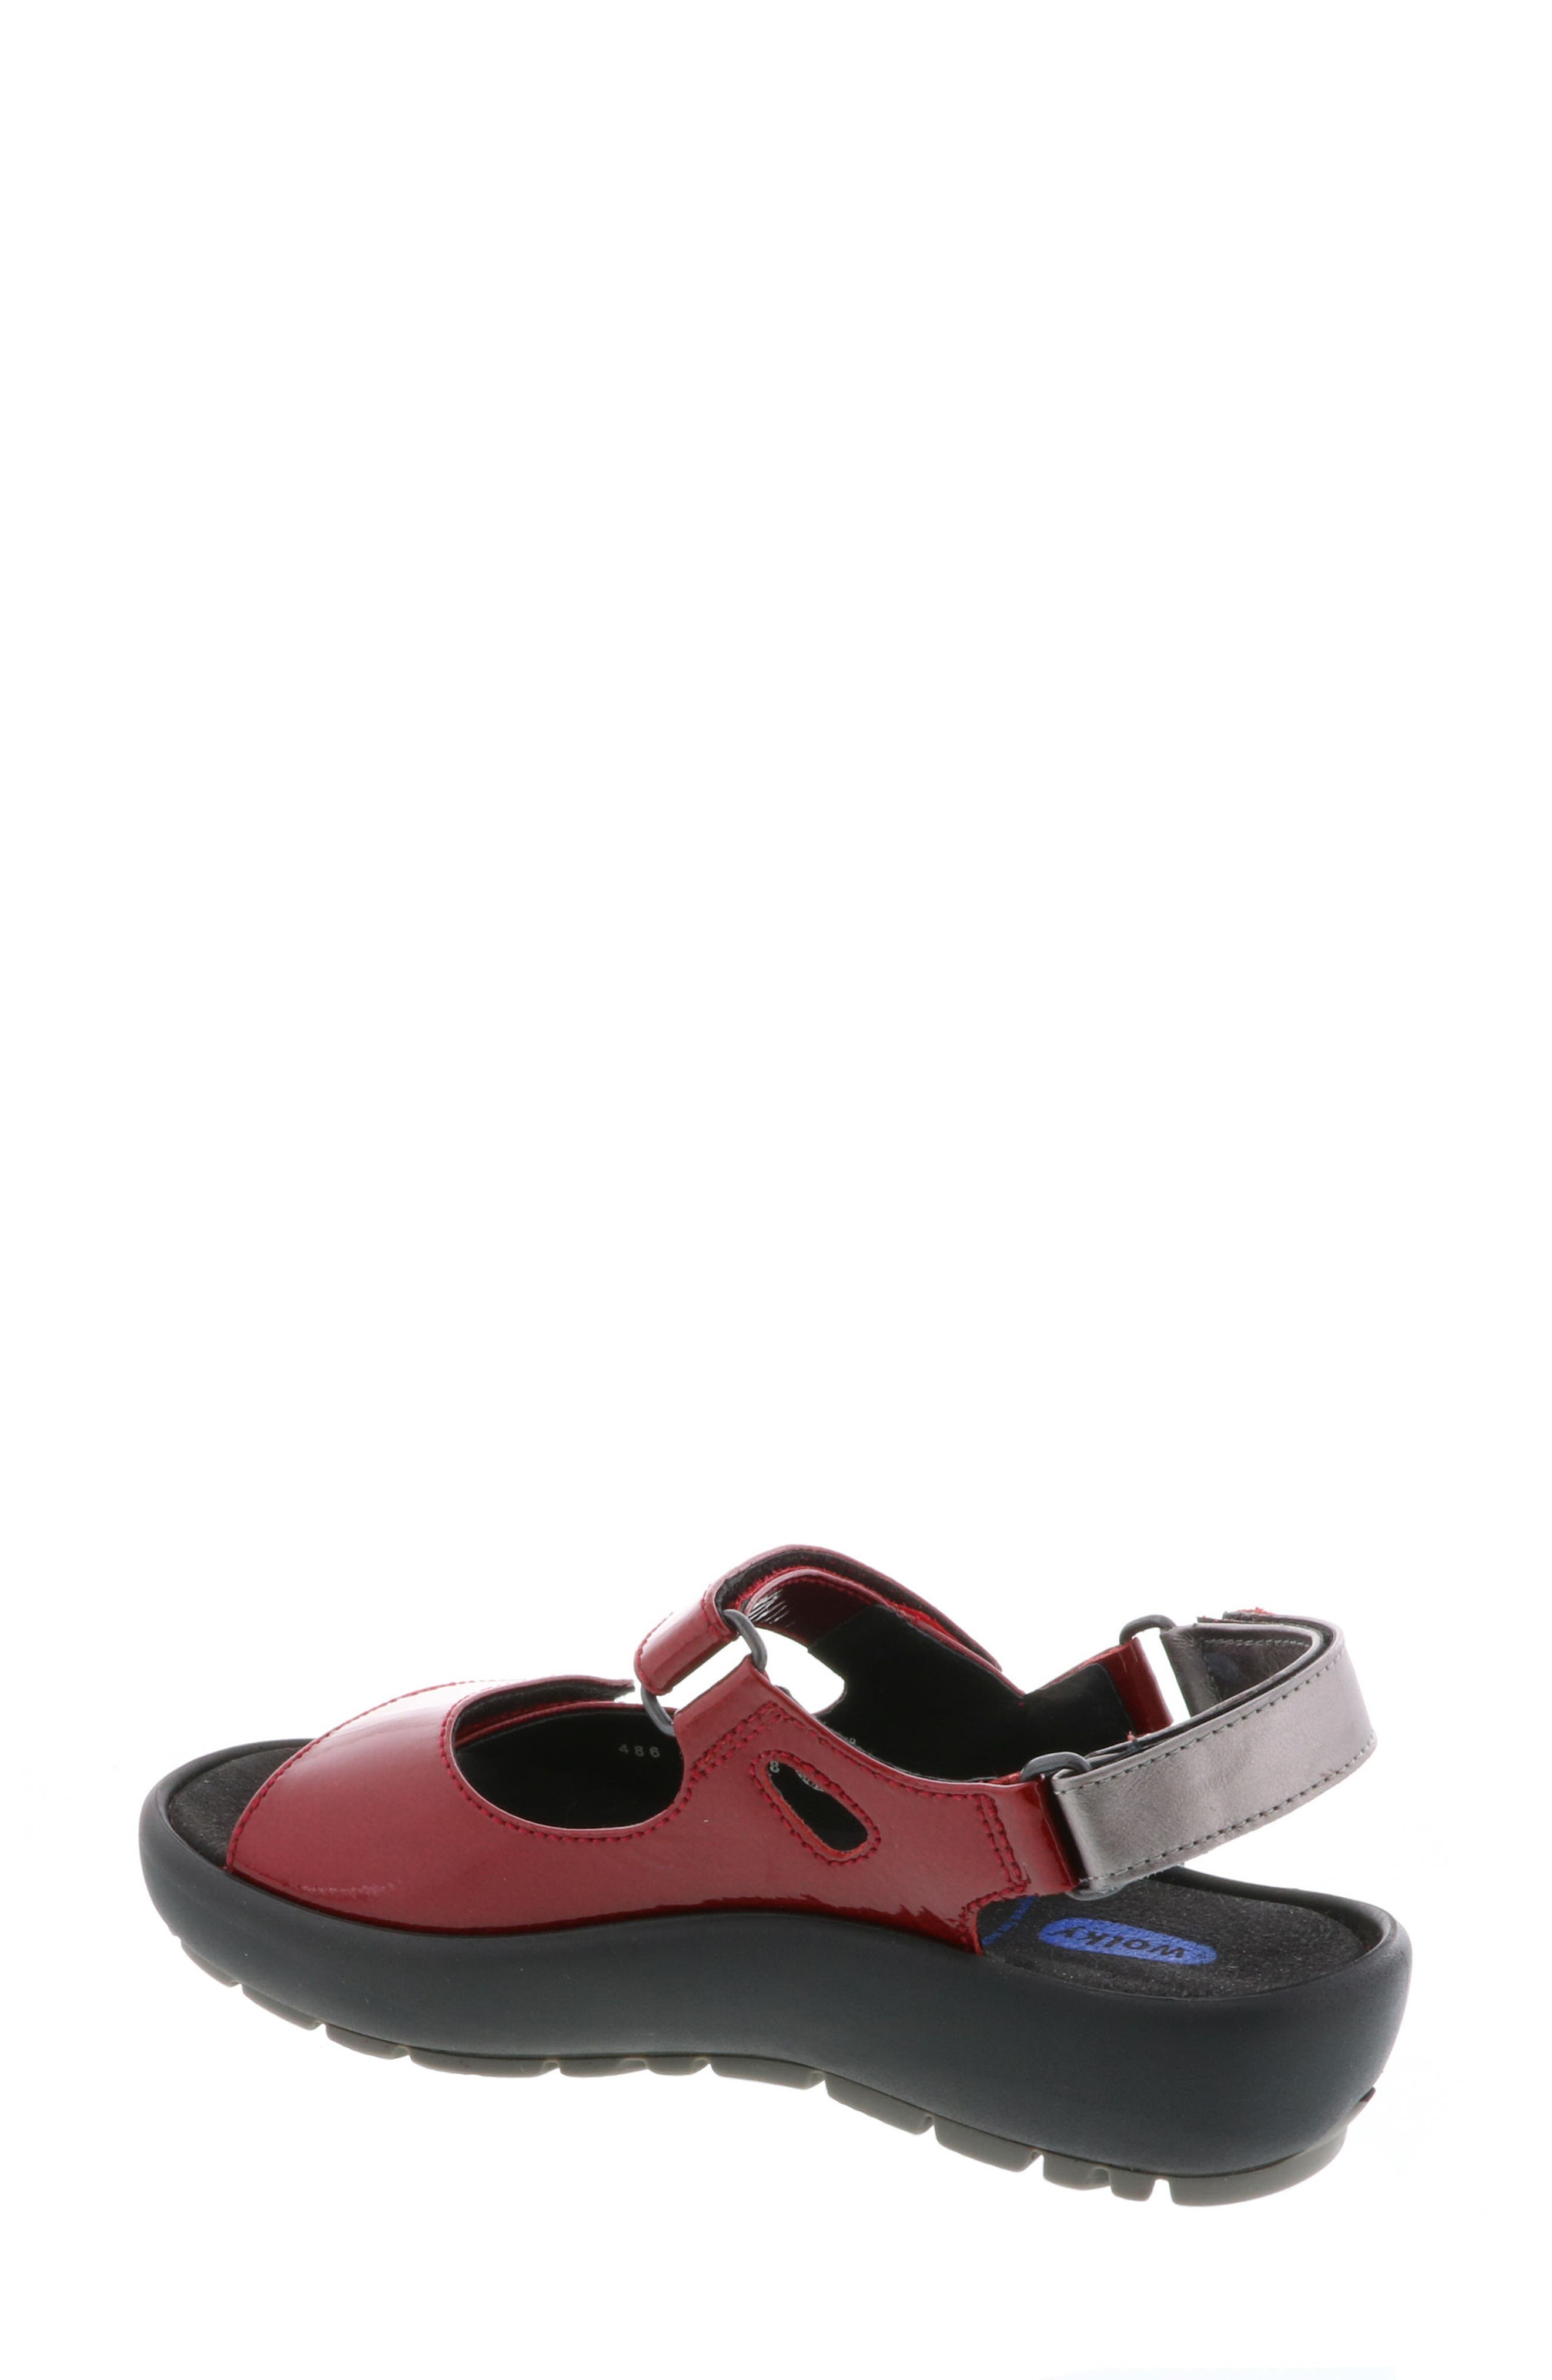 Rio Sandal,                             Alternate thumbnail 2, color,                             Red Patent Leather